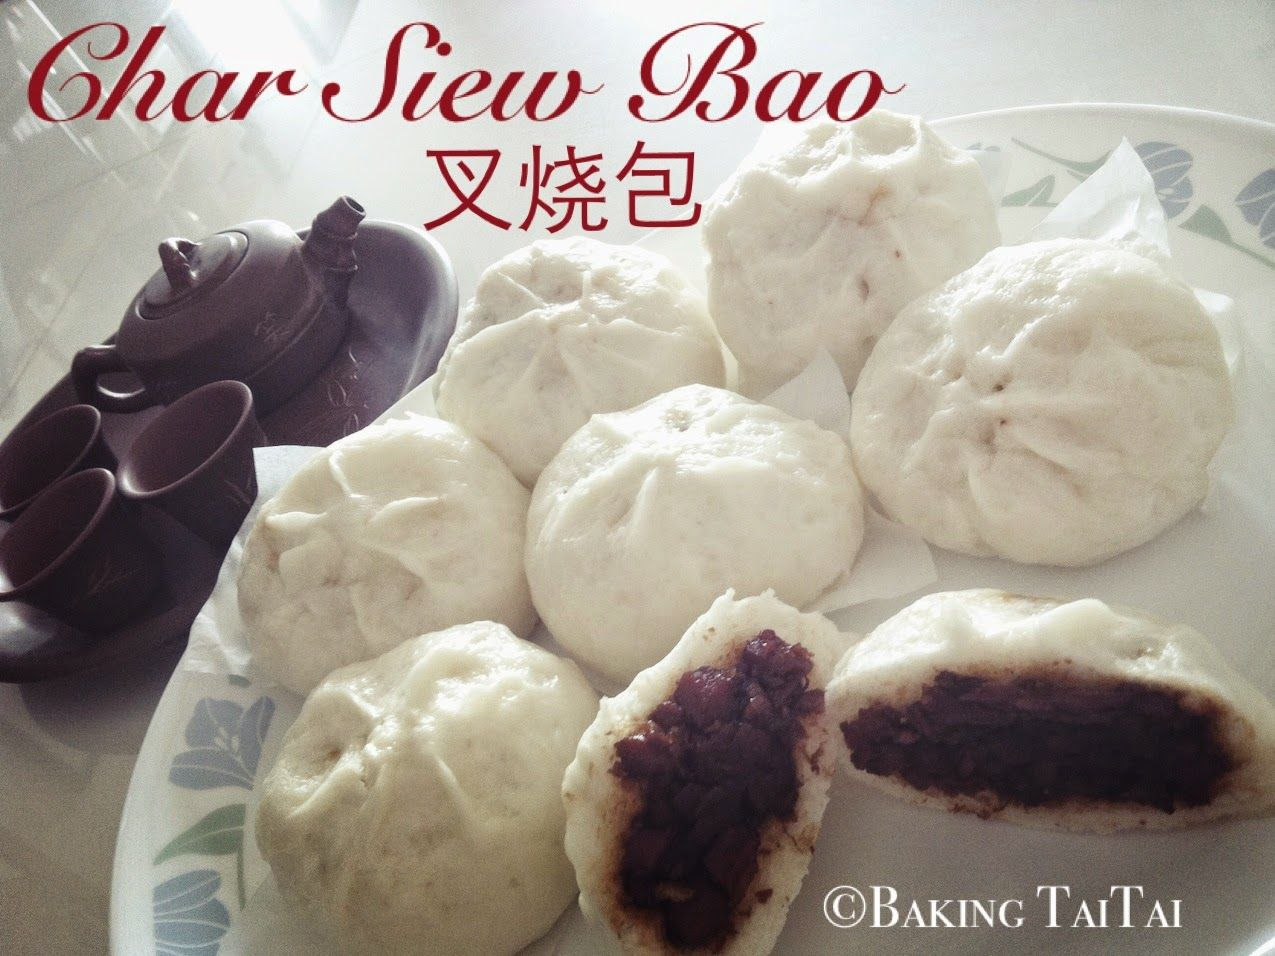 Baking Taitai 烘焙太太: Red bean paste steam buns & Char Siew Bao ...